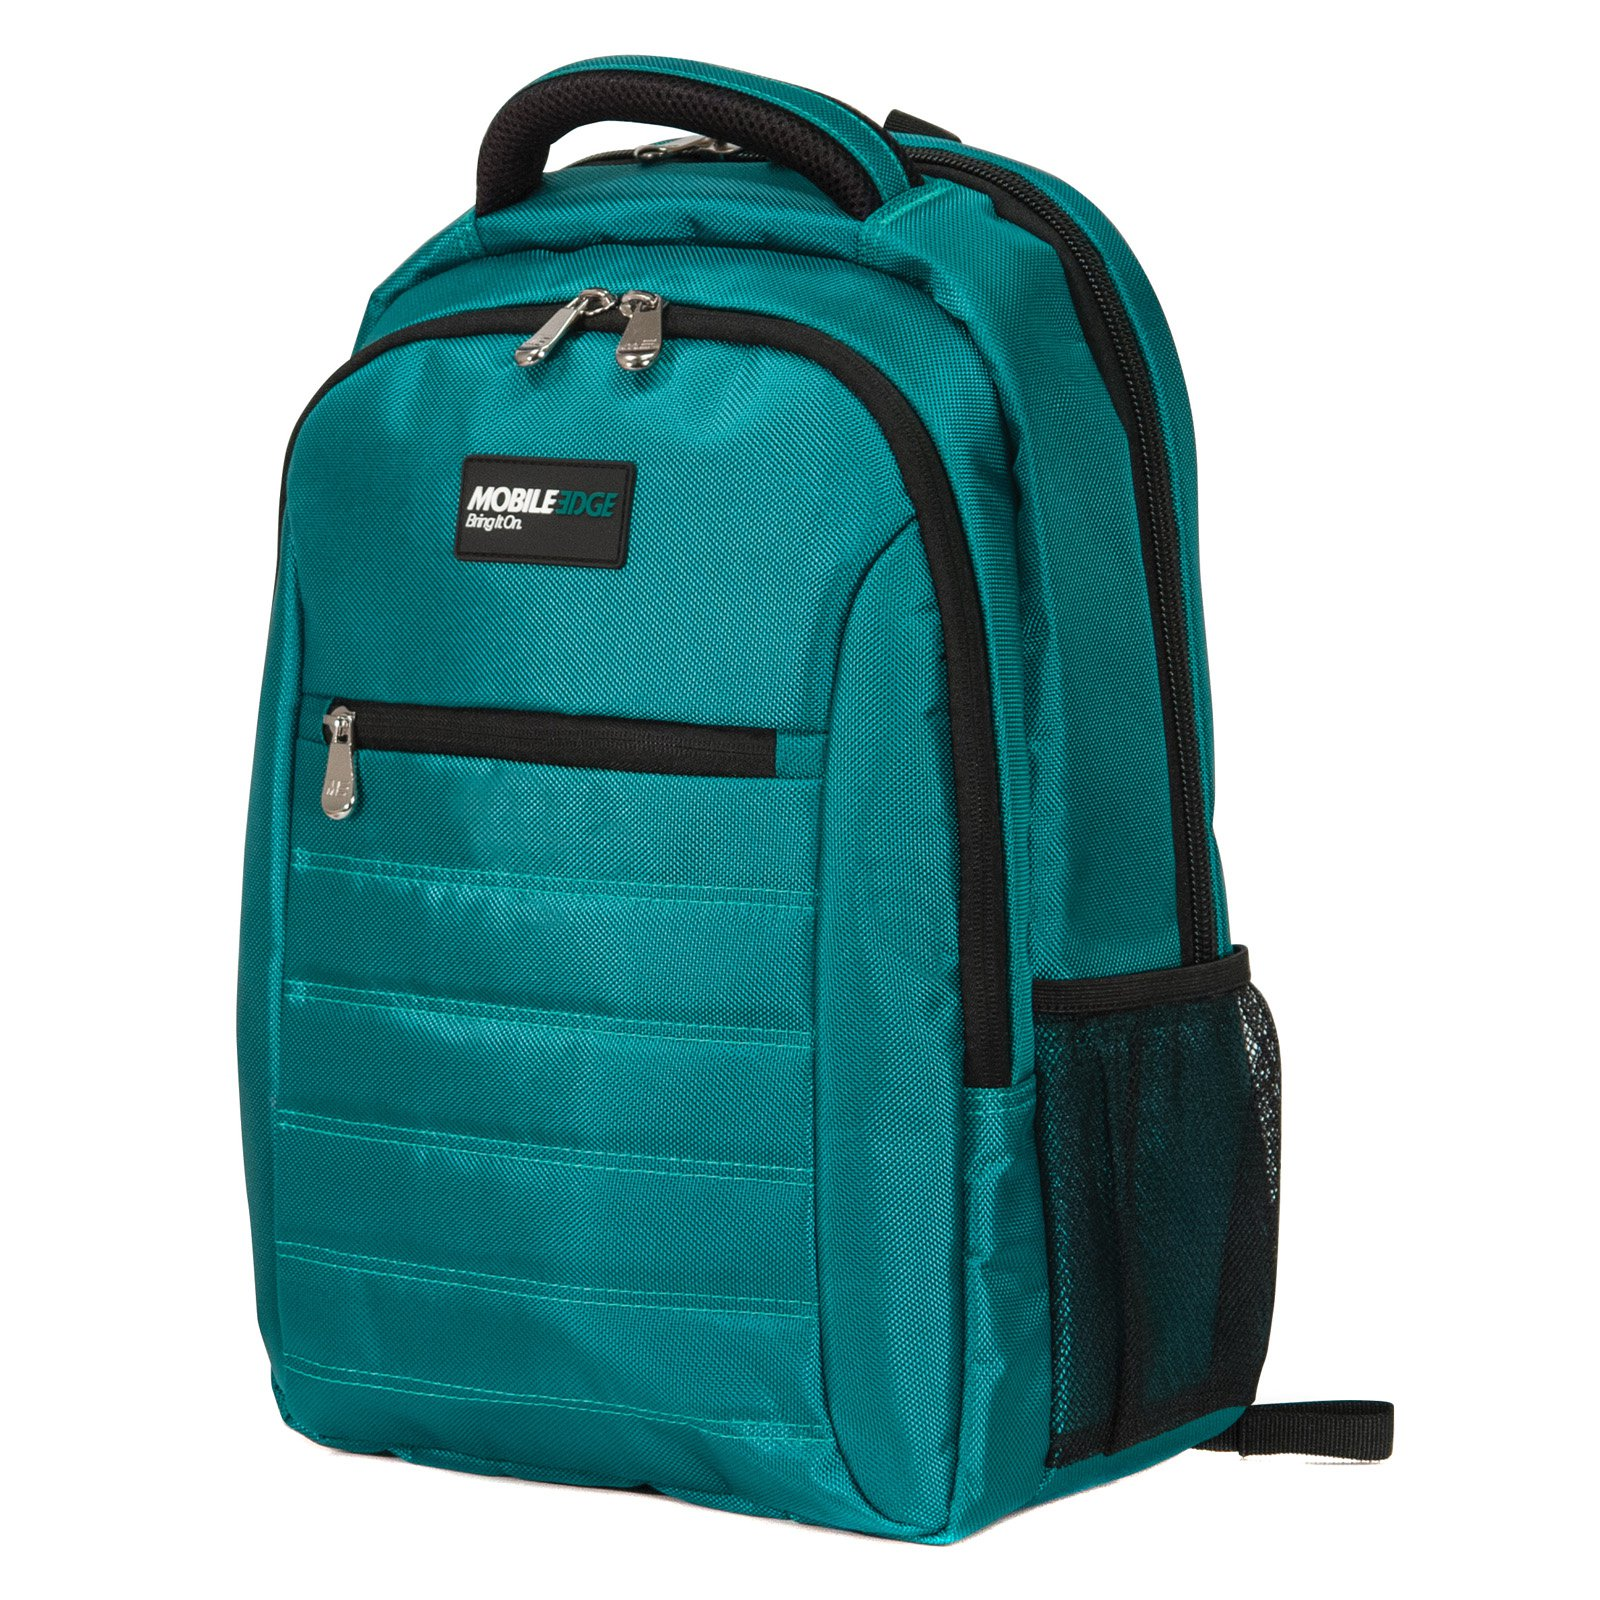 "Mobile Edge SmartPack for 16"" Laptops, Teal"